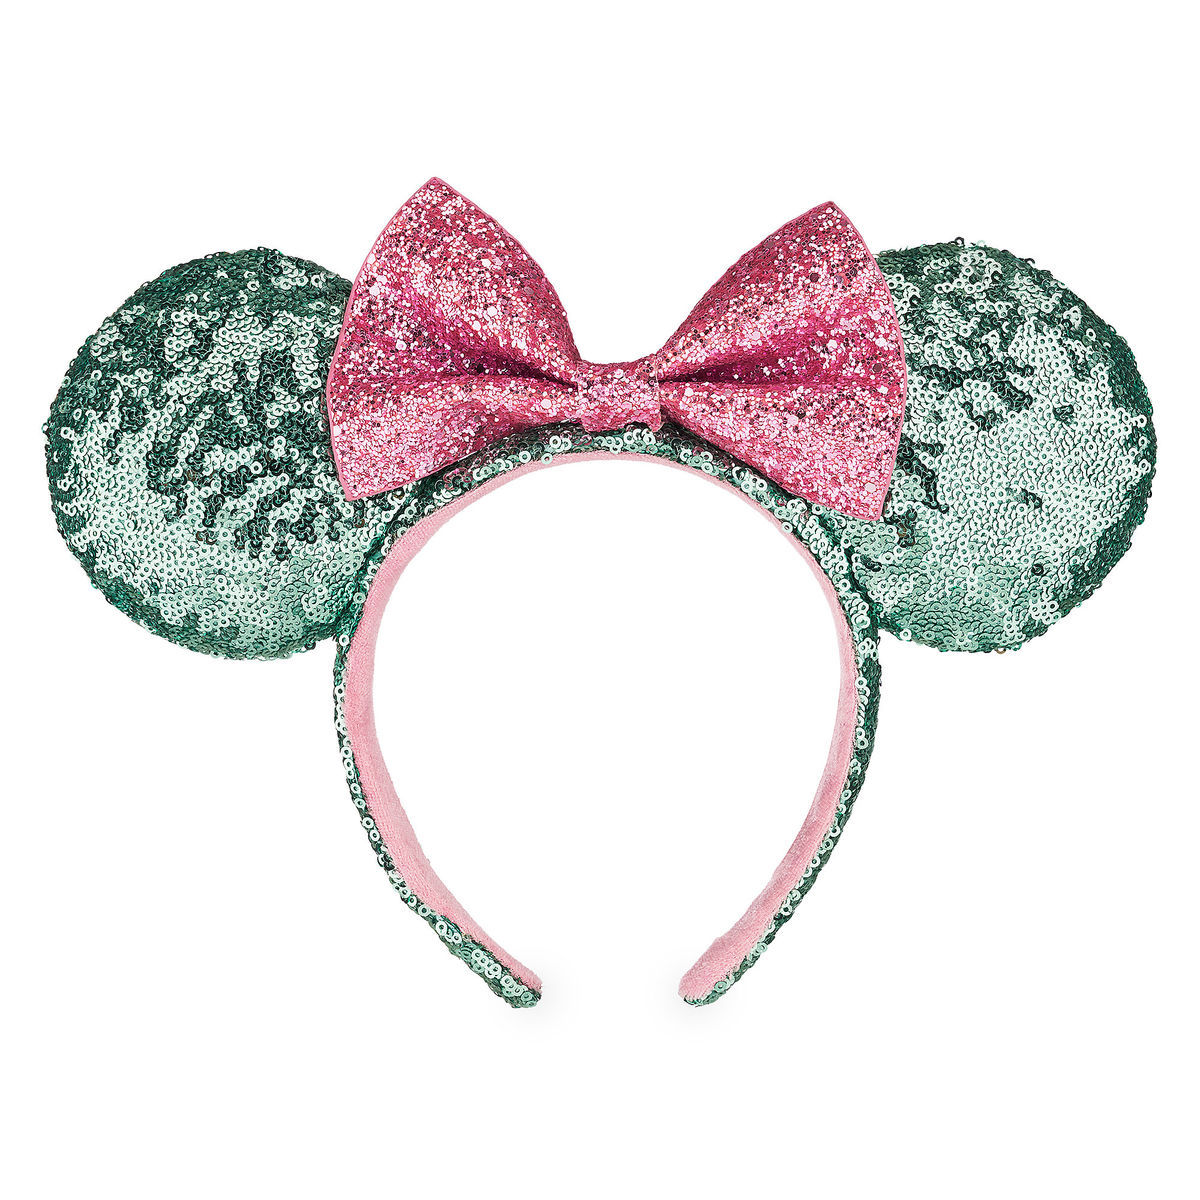 Disney Minnie Ears Headband - Vanellope - Mint and Pink Sequins